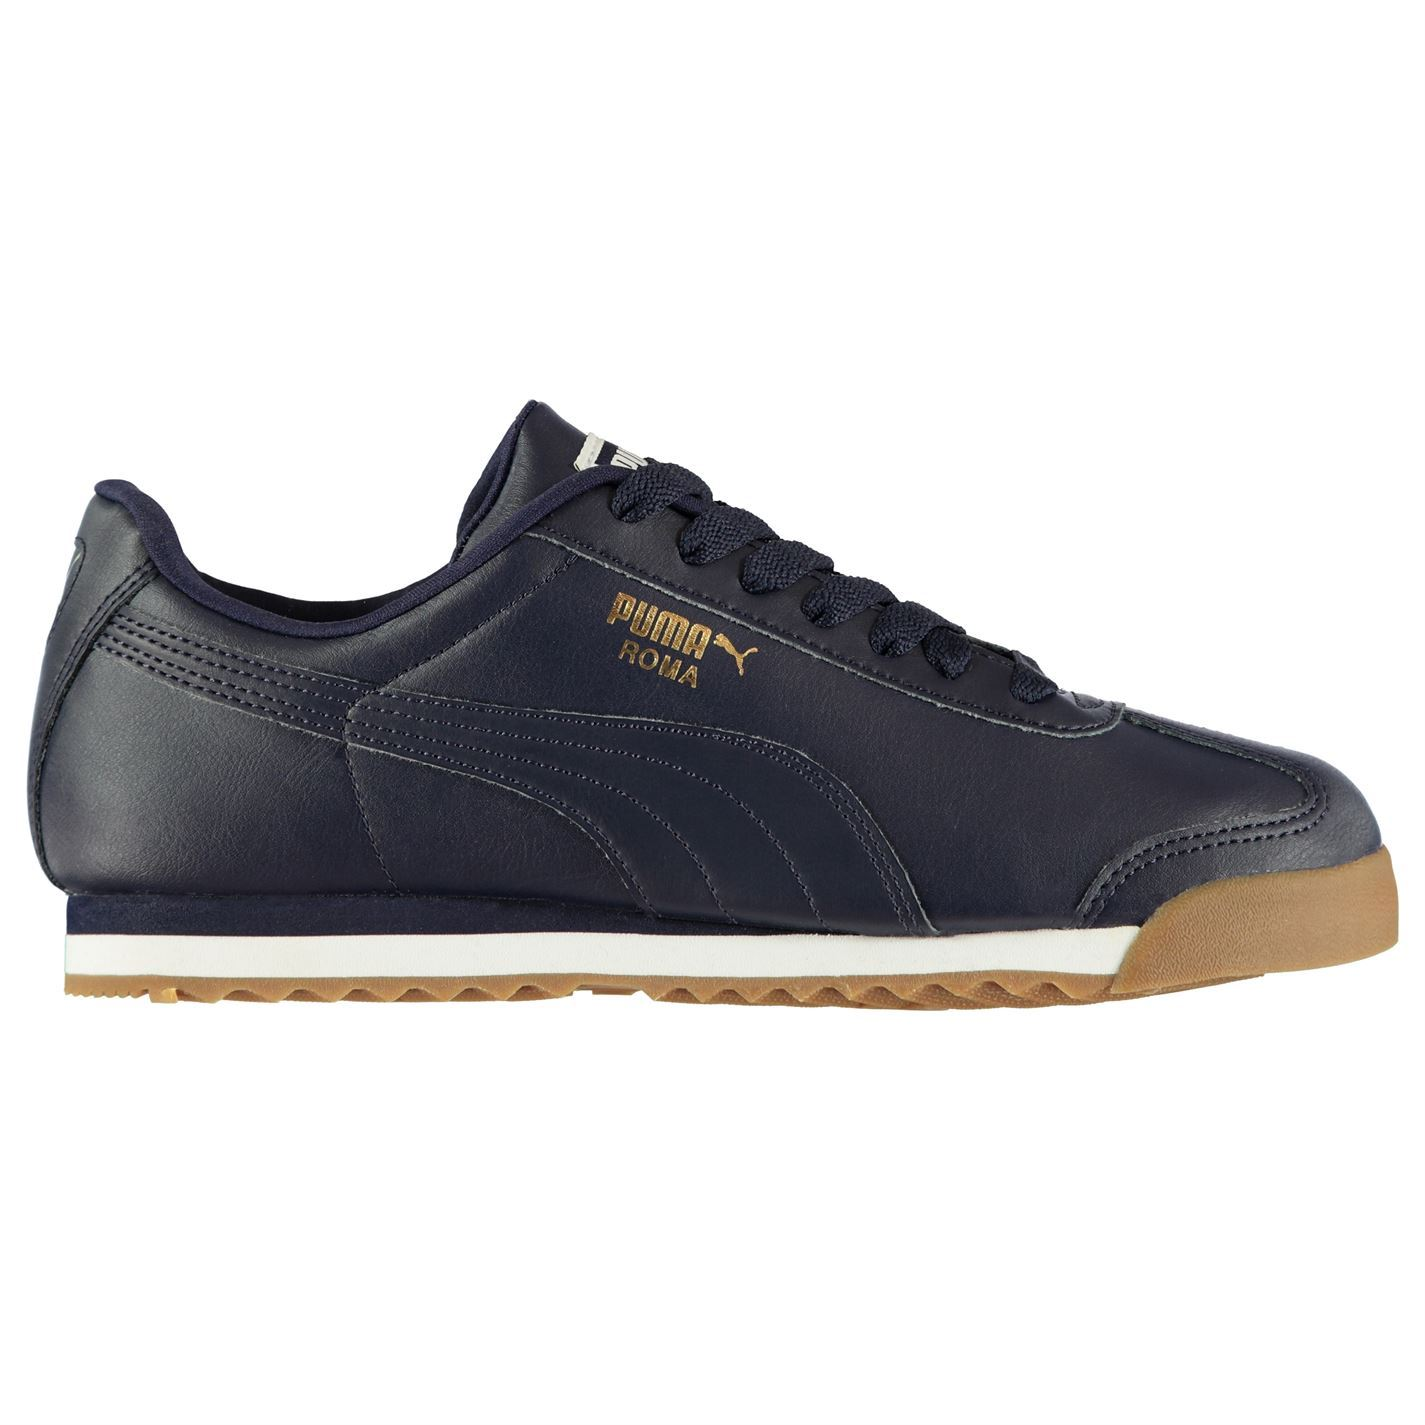 Puma-Roma-Basic-Trainers-Mens-Athleisure-Footwear-Shoes-Sneakers thumbnail 14